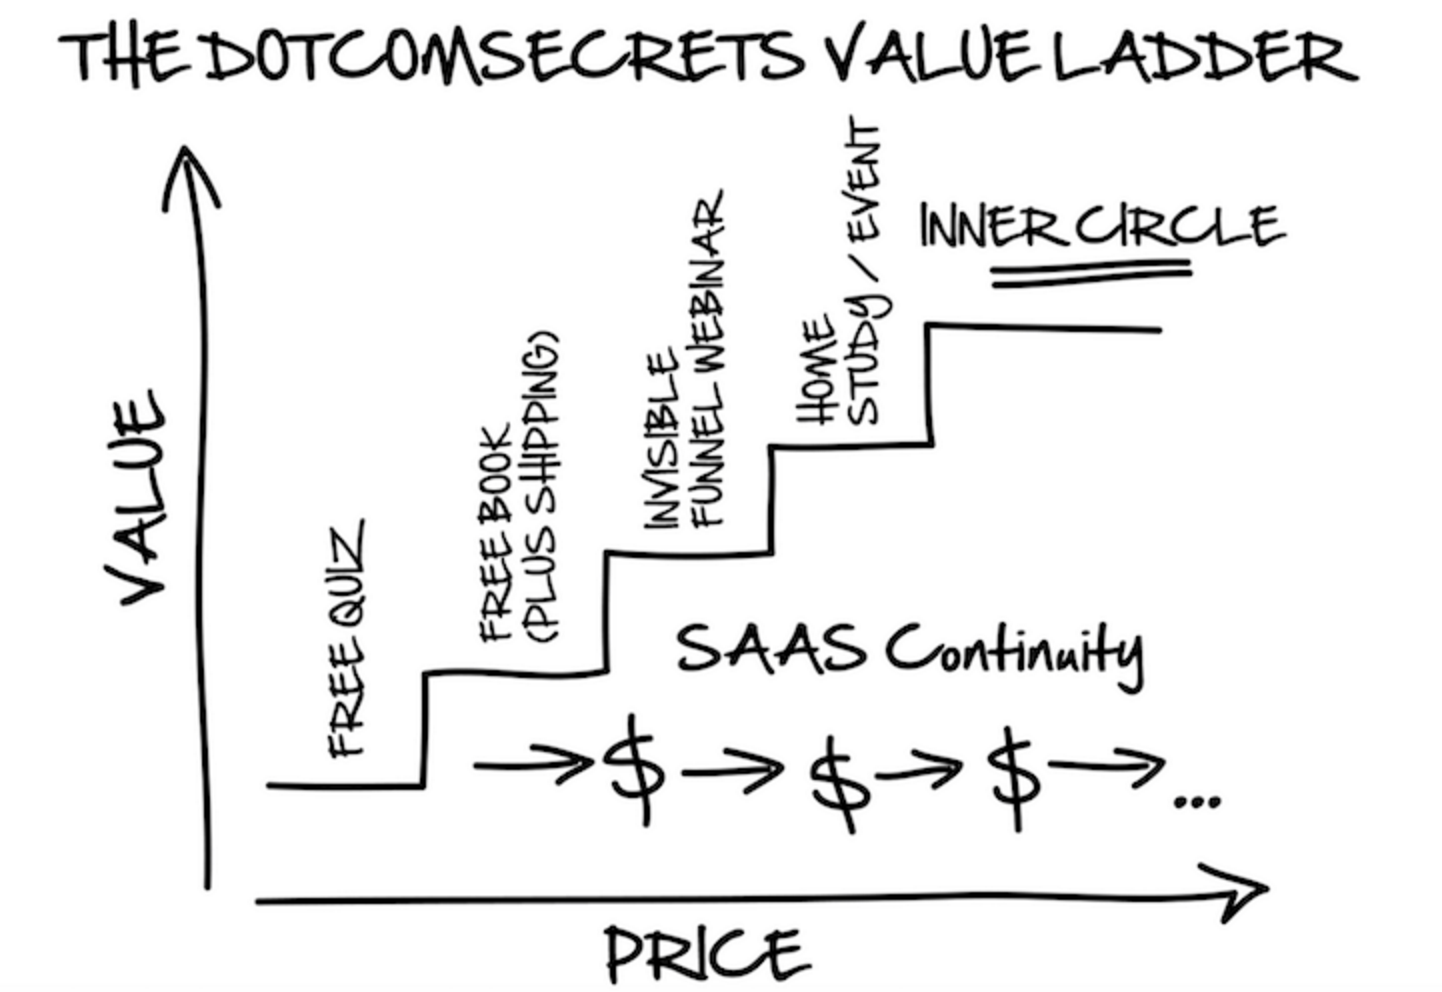 Dotcom Secrets Book Value Ladder